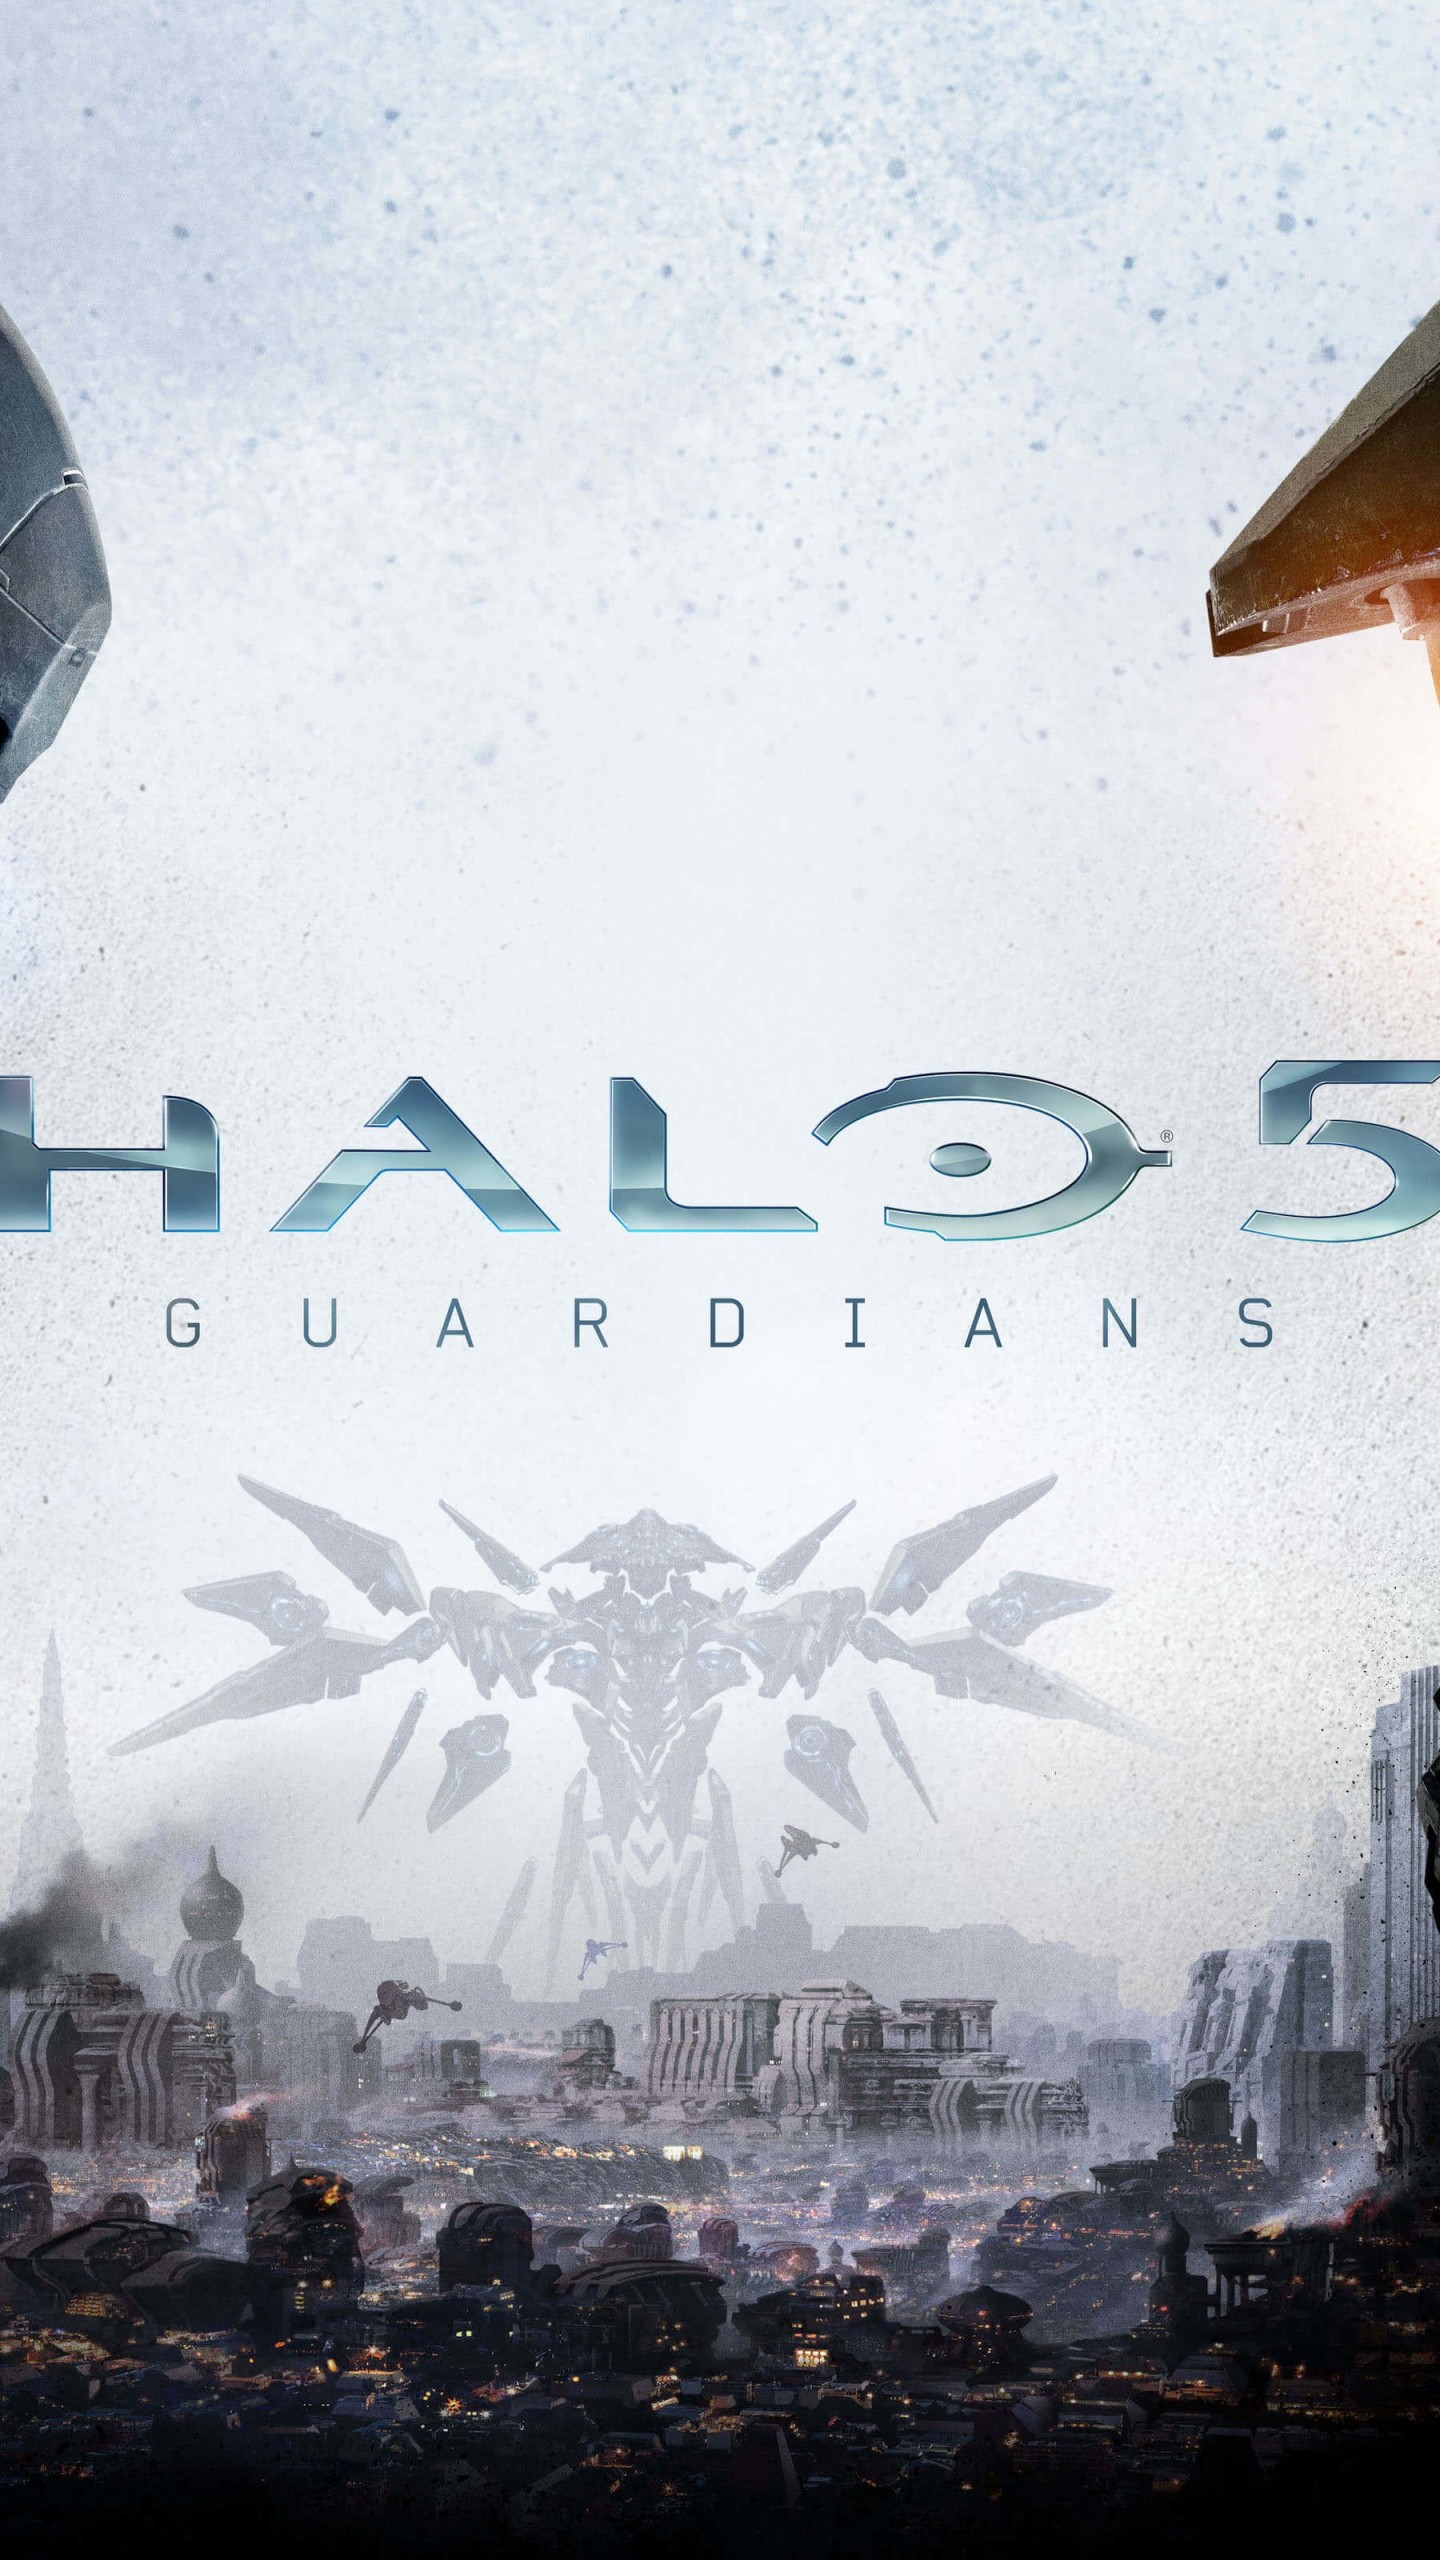 Halo 5: Guardians Wallpaper for LG G3